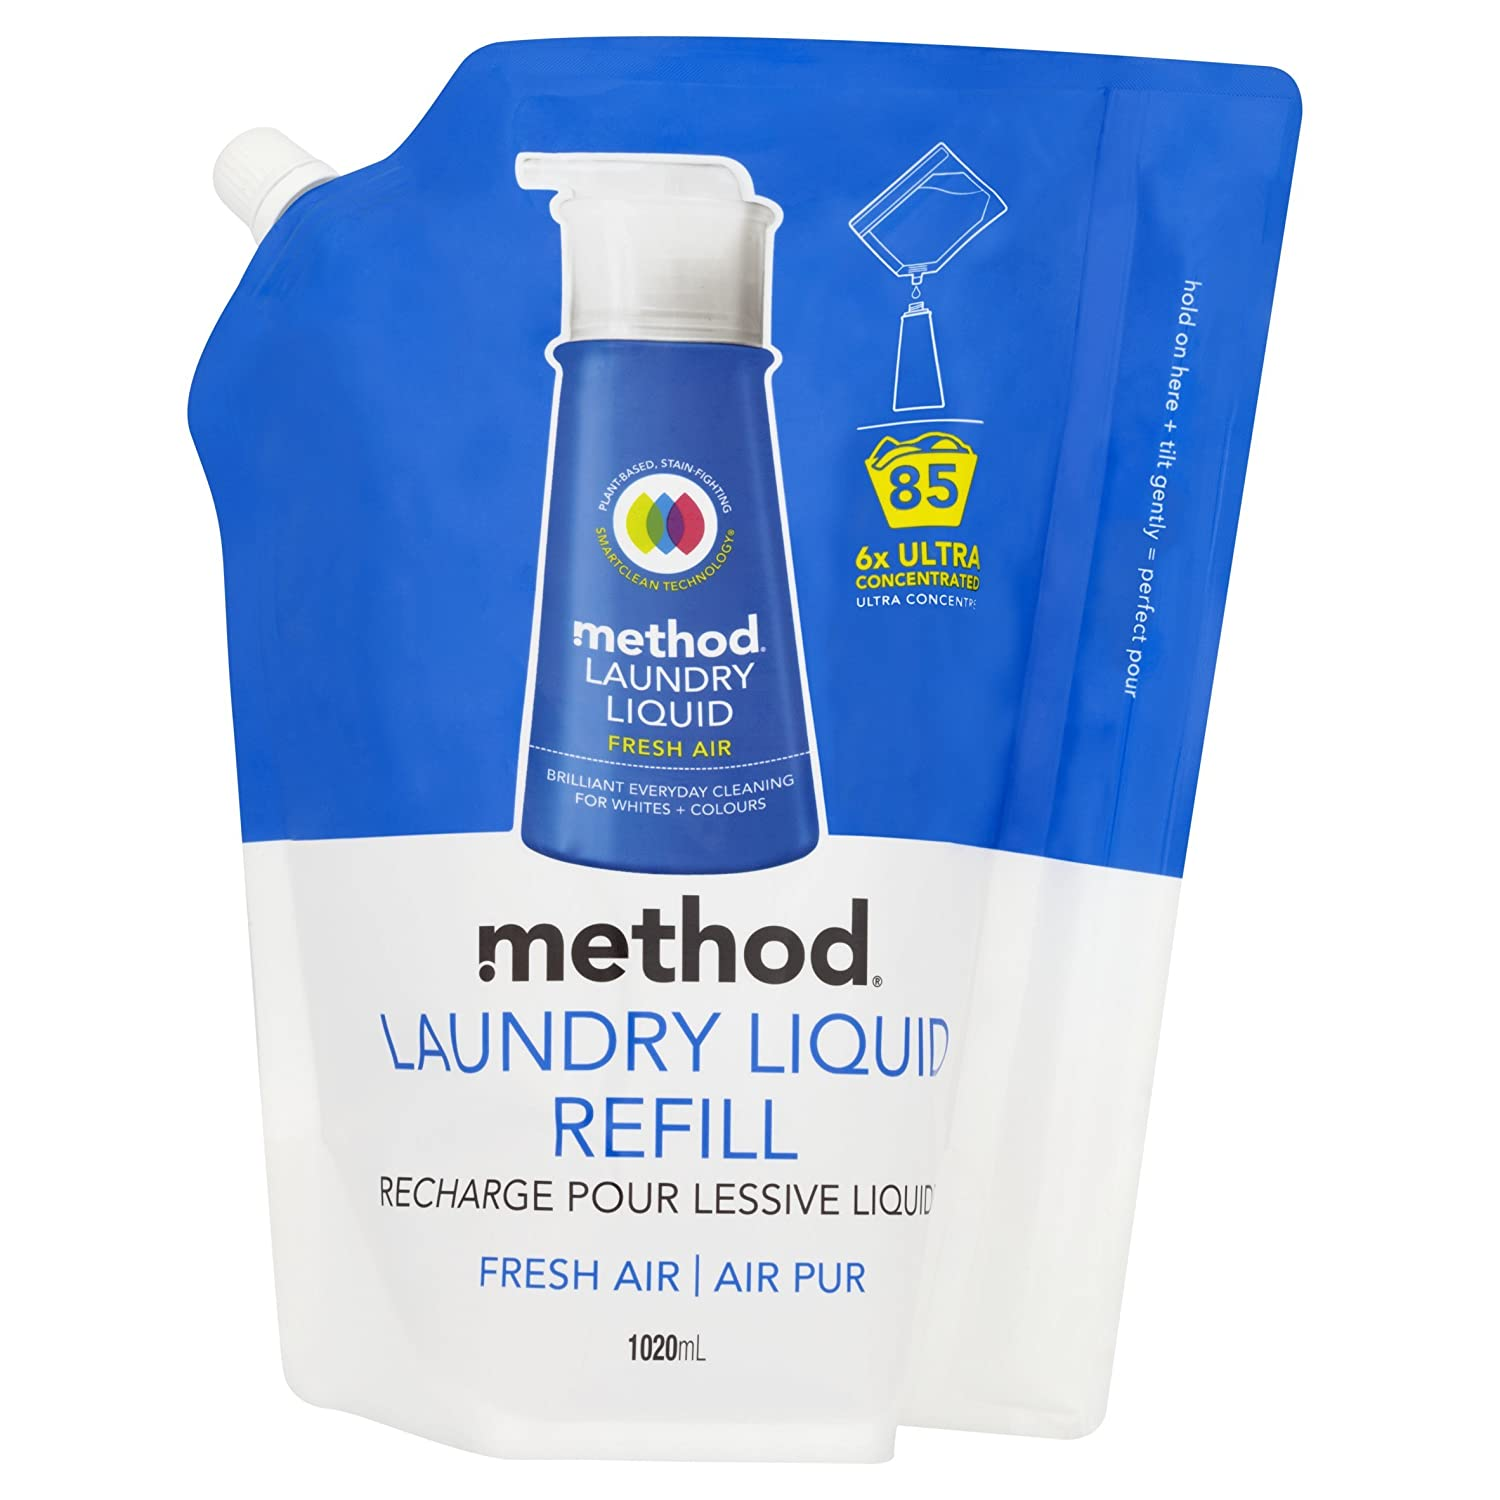 Method | Laundry Detergent Fresh Air | 1 x 1020ml